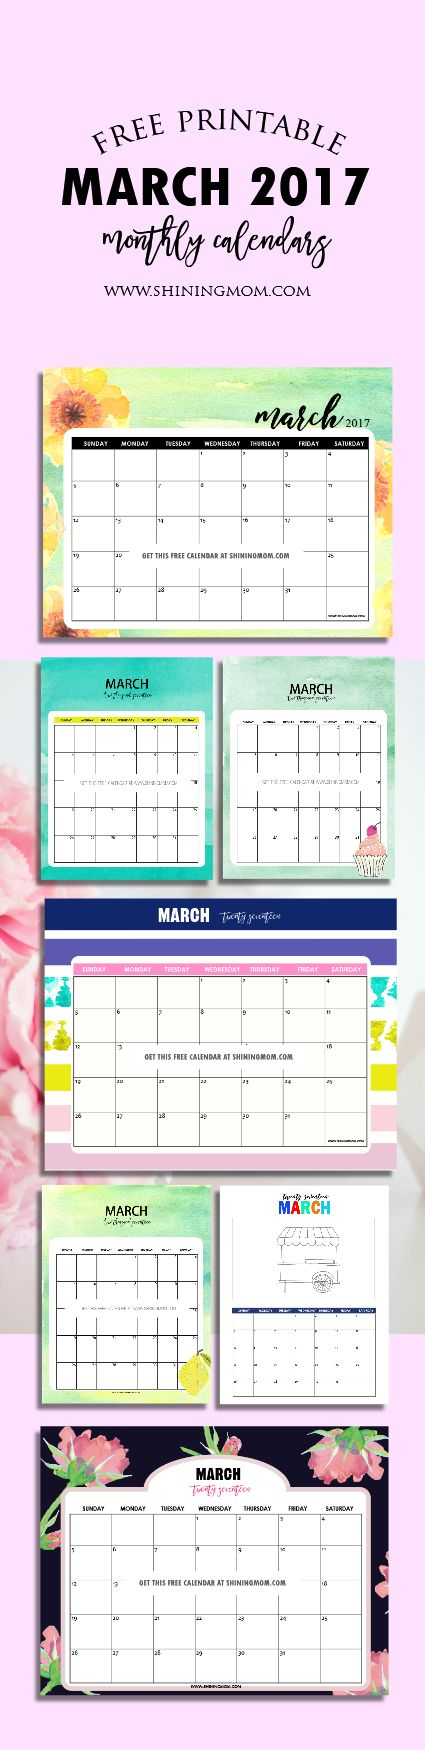 120 best Free Calendars images on Pinterest Free calendars, Free - free calendar printable